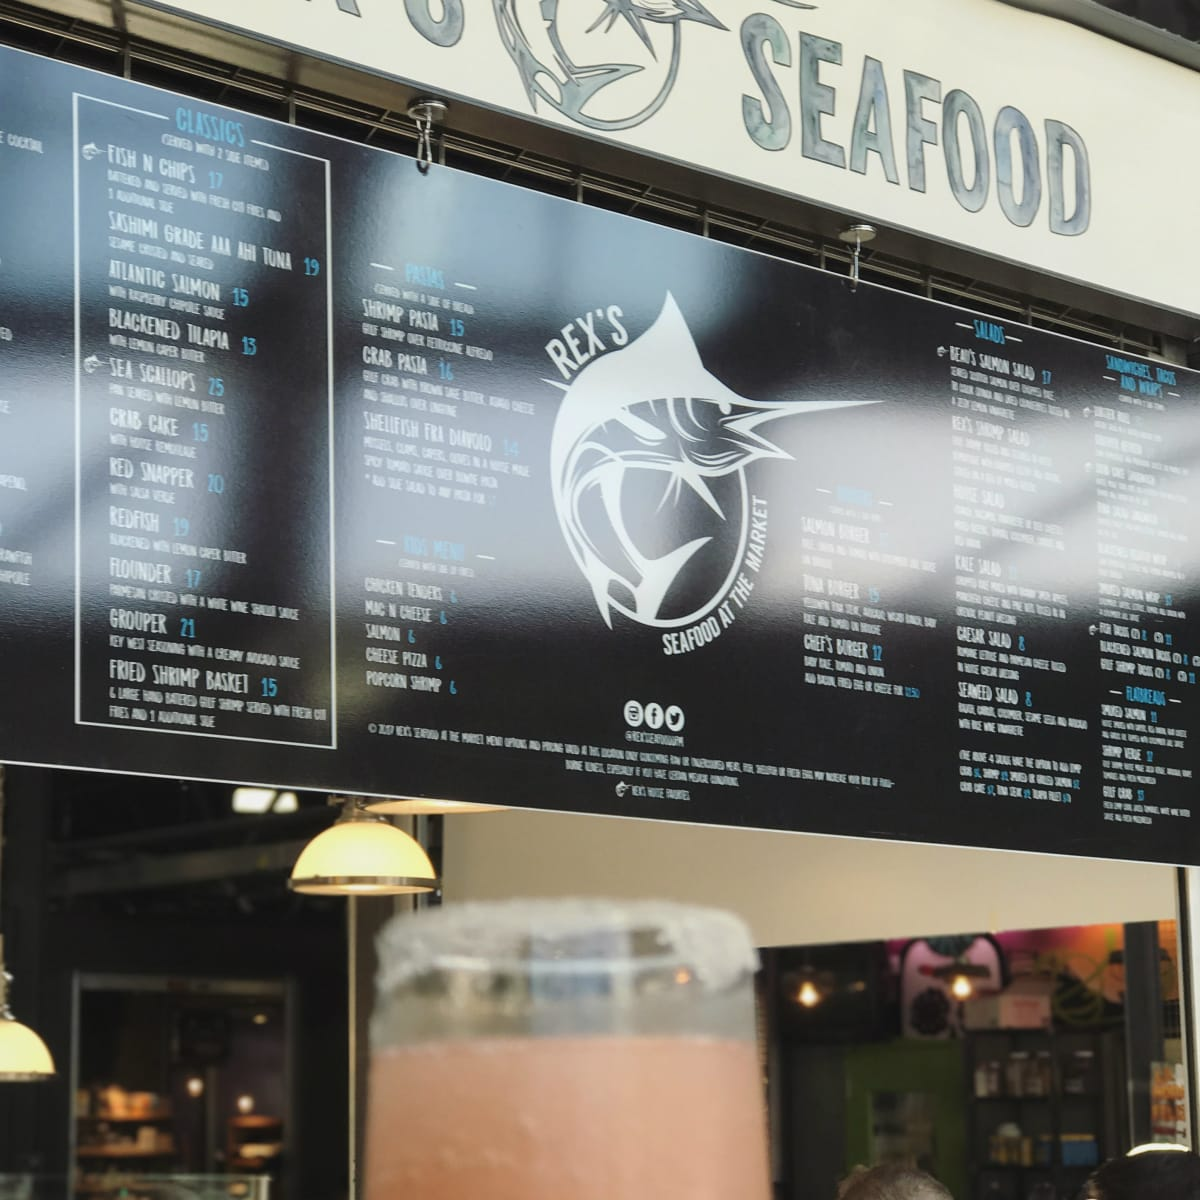 Rex's Seafood menu and frose